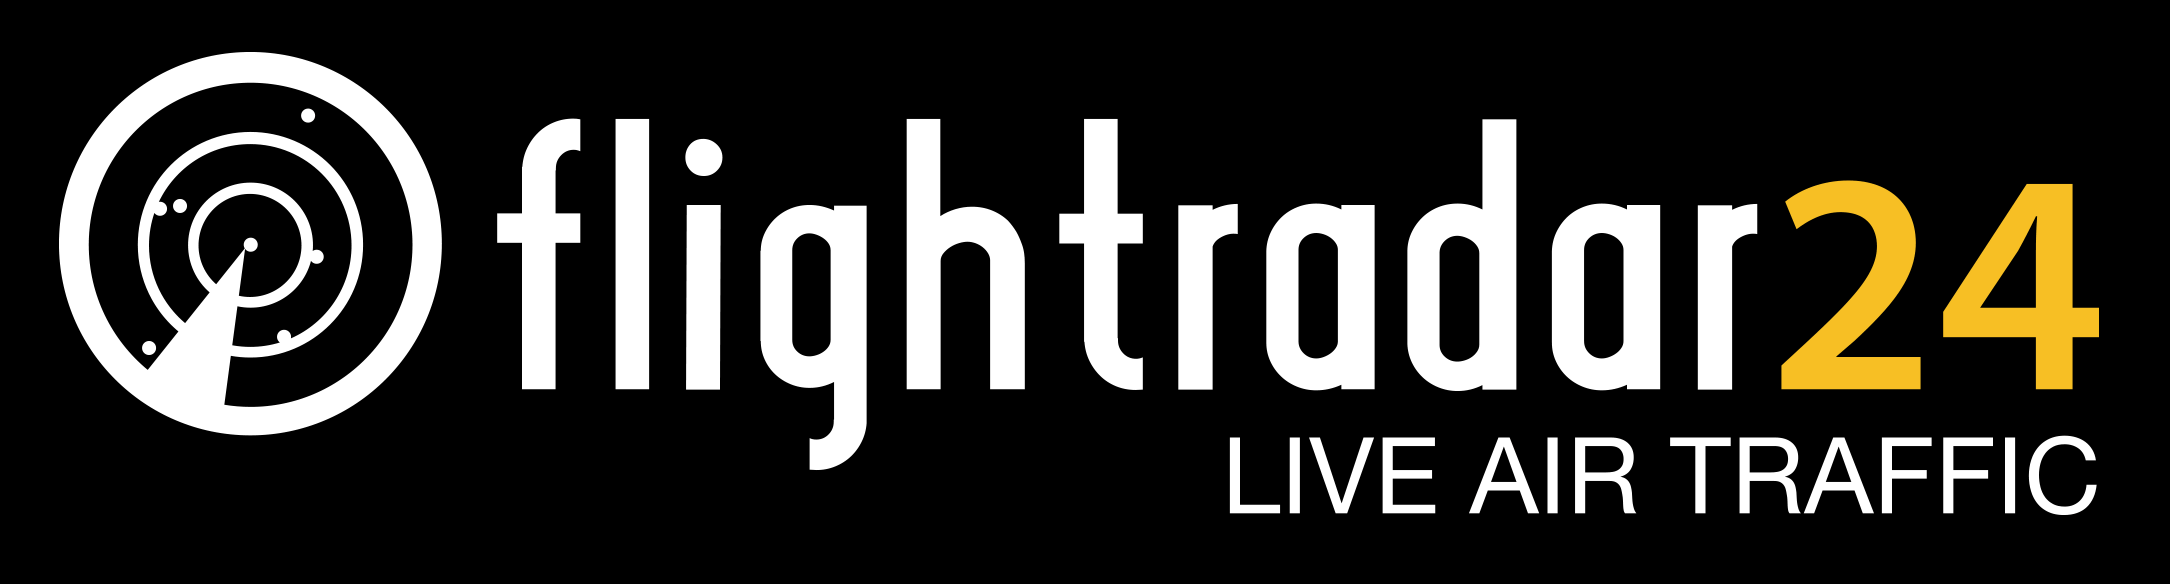 flightradar24_logo_on_black